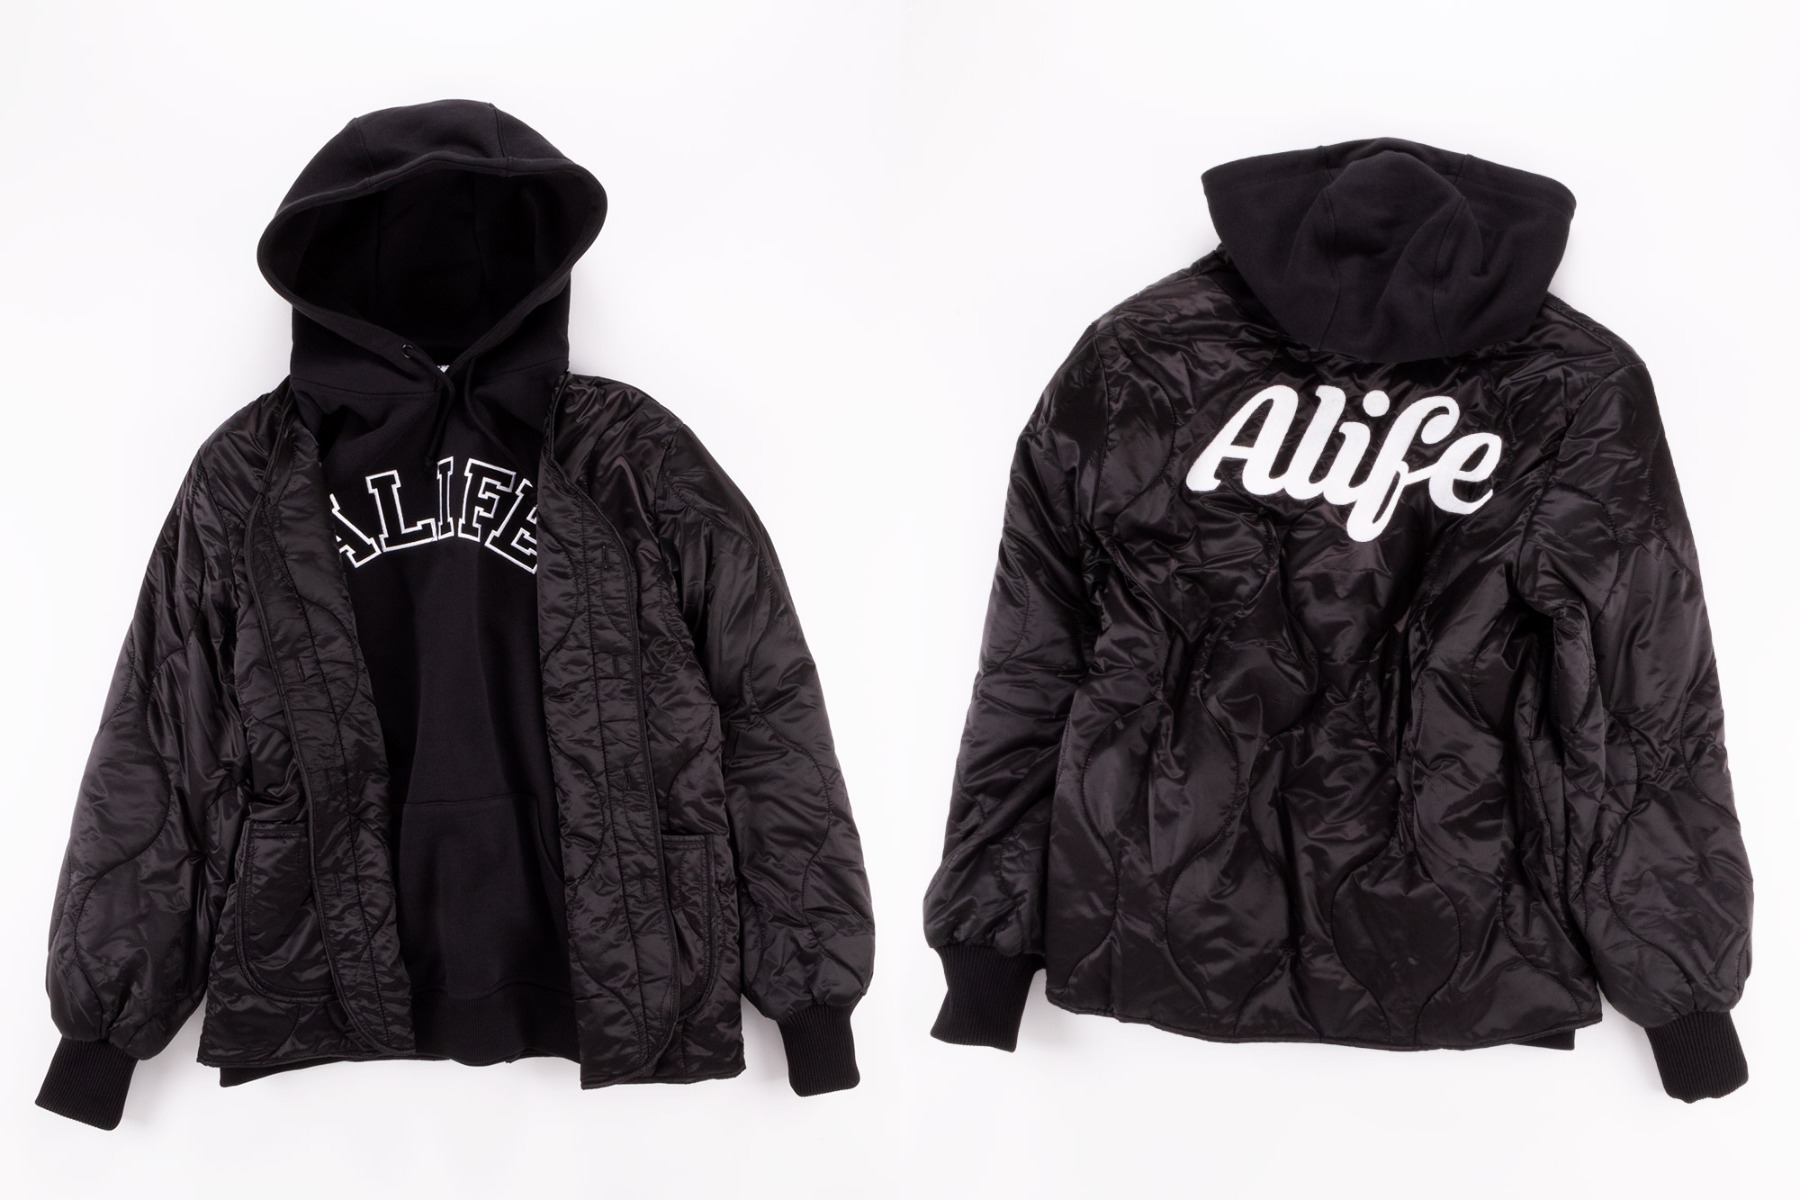 Alife Military LAyer JAcket in Black at Wellgosh